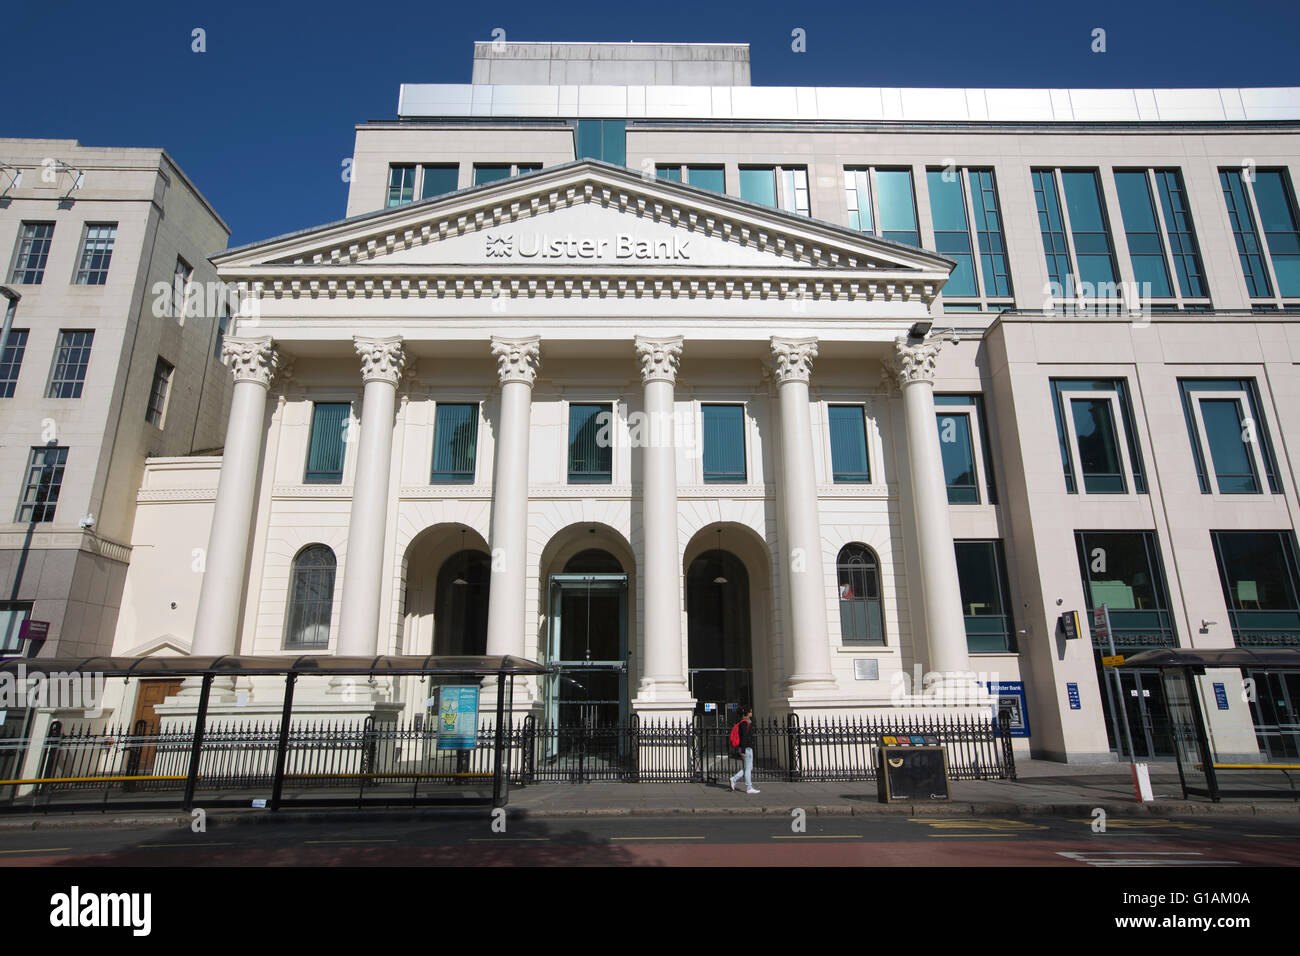 Ulster Bank headquarters, Donegall Square East, Belfast, Northern Ireland - Stock Image